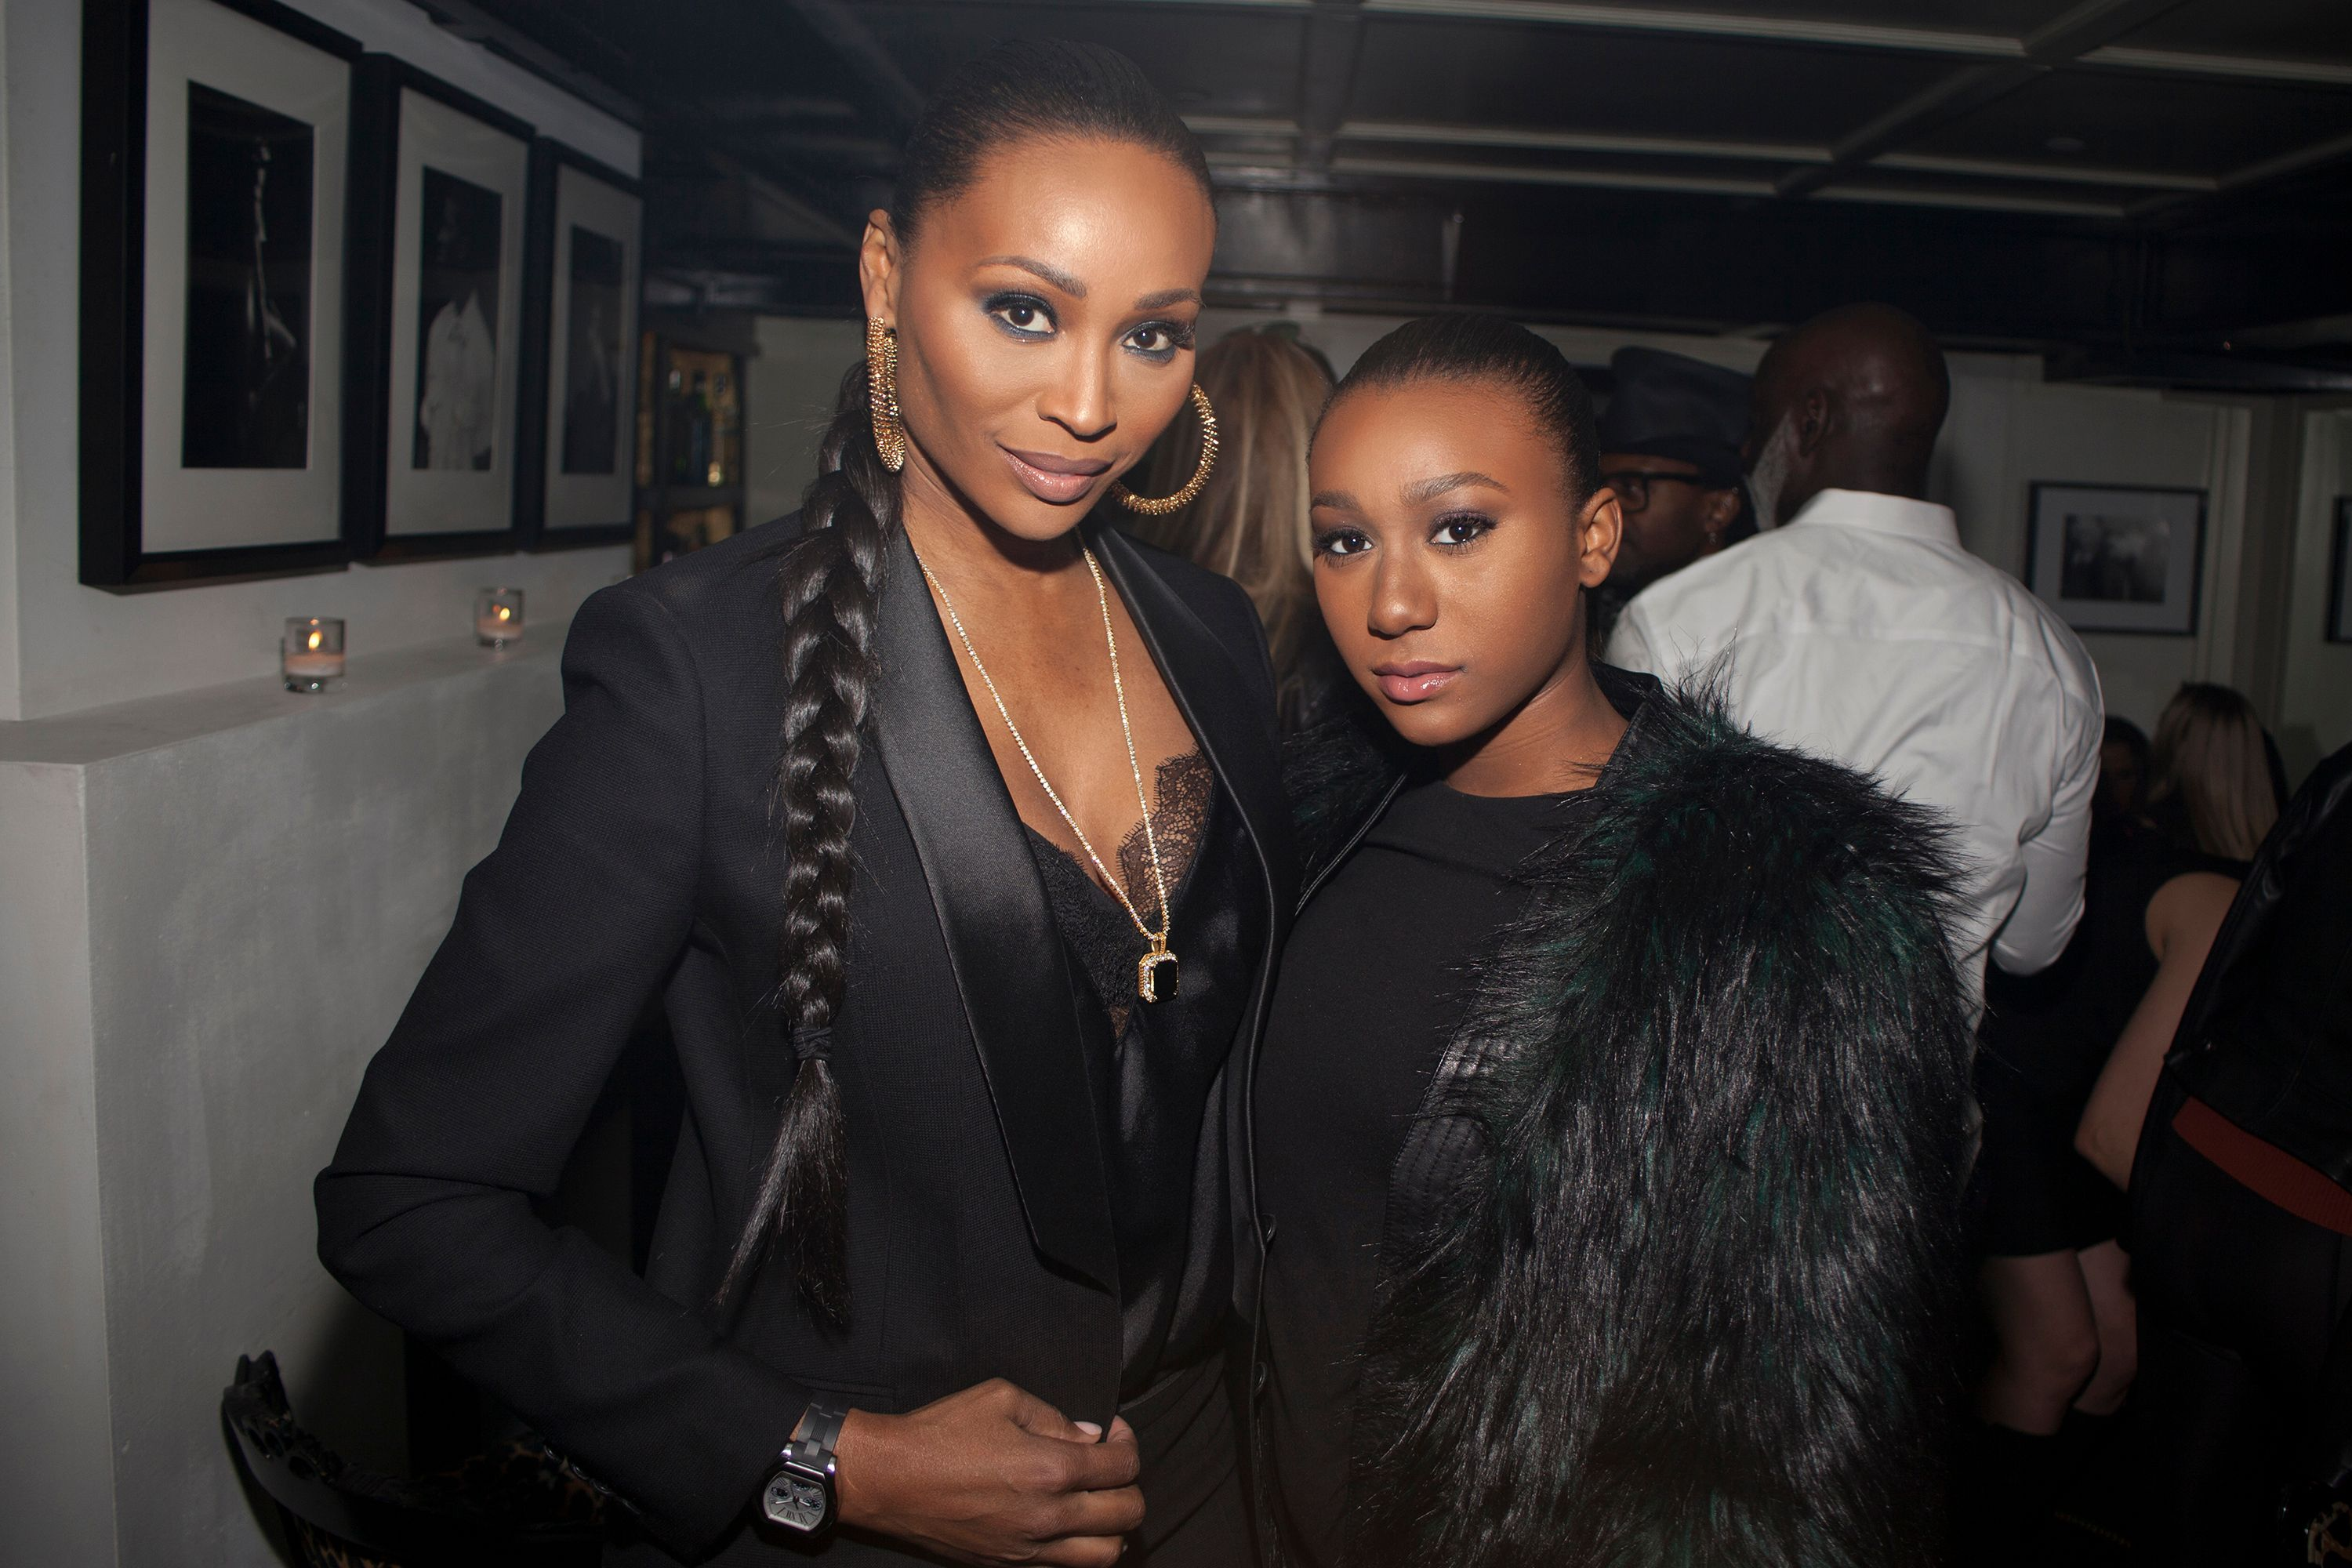 Cynthia Bailey and daughter Noelle Robinson at an event